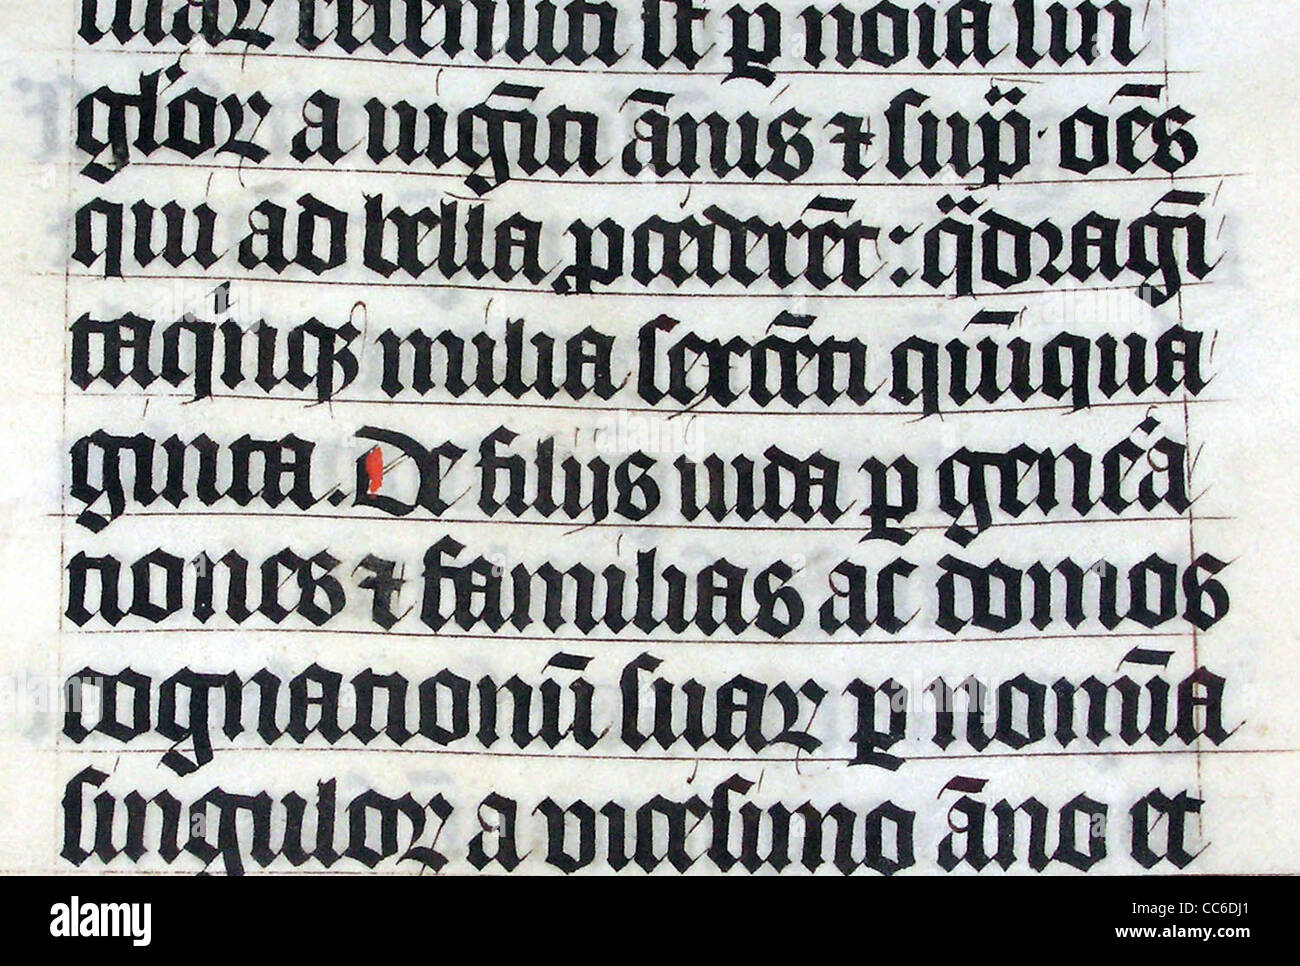 La calligrafia in una Bibbia latina di AD 1407 sul display in Malmesbury Abbey Immagini Stock